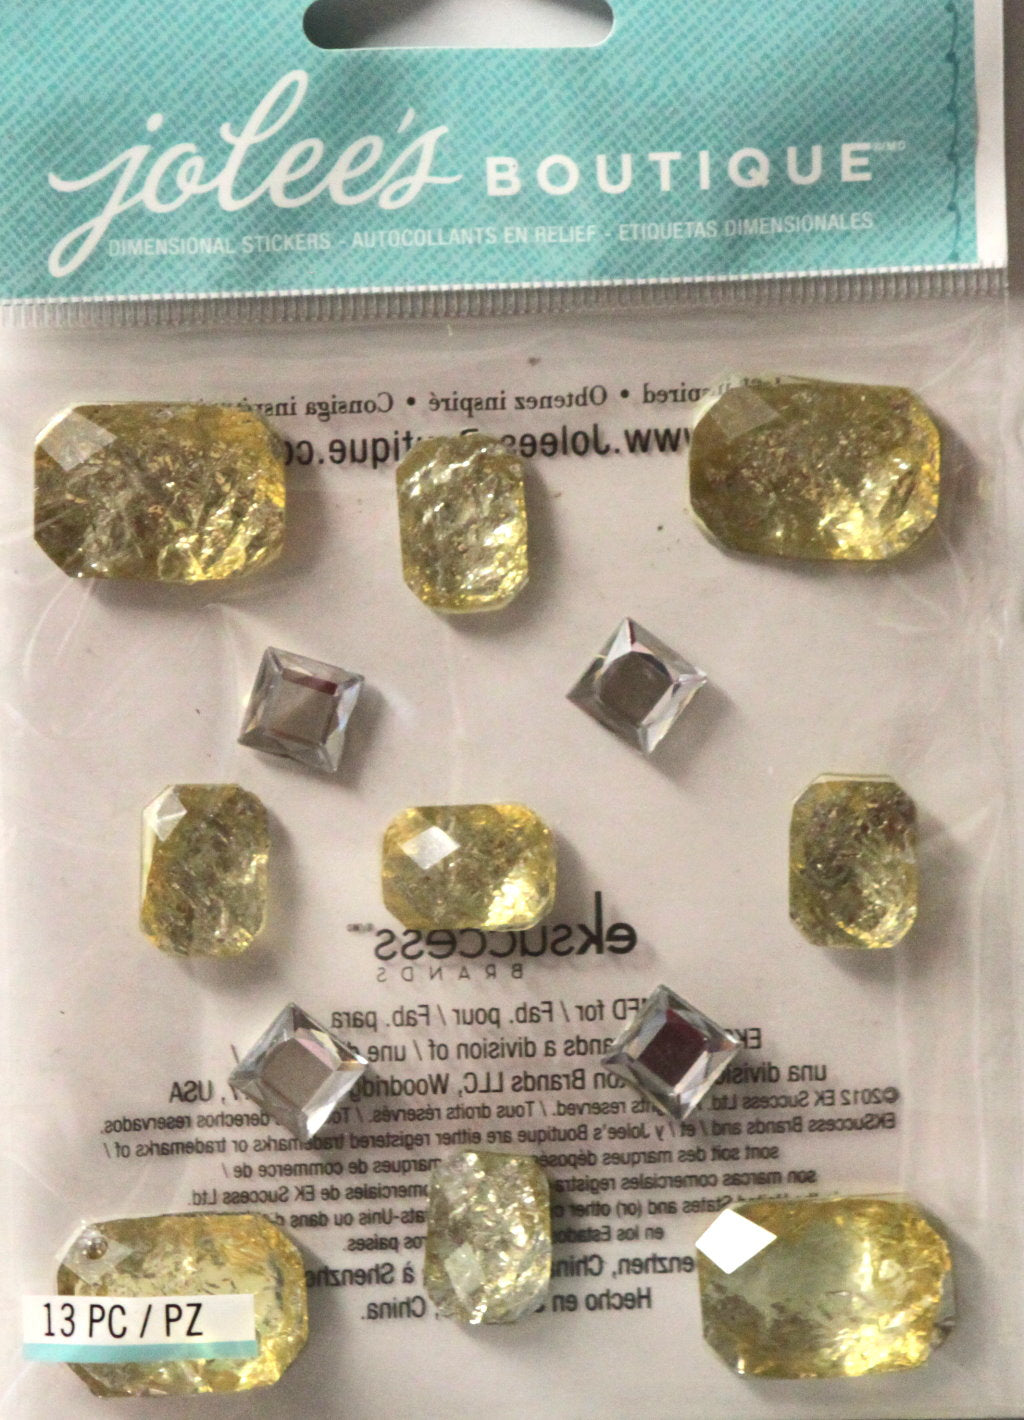 Jolee's Boutique Foil Jewels Yellow Diamond Adhesive Dimensional Stickers